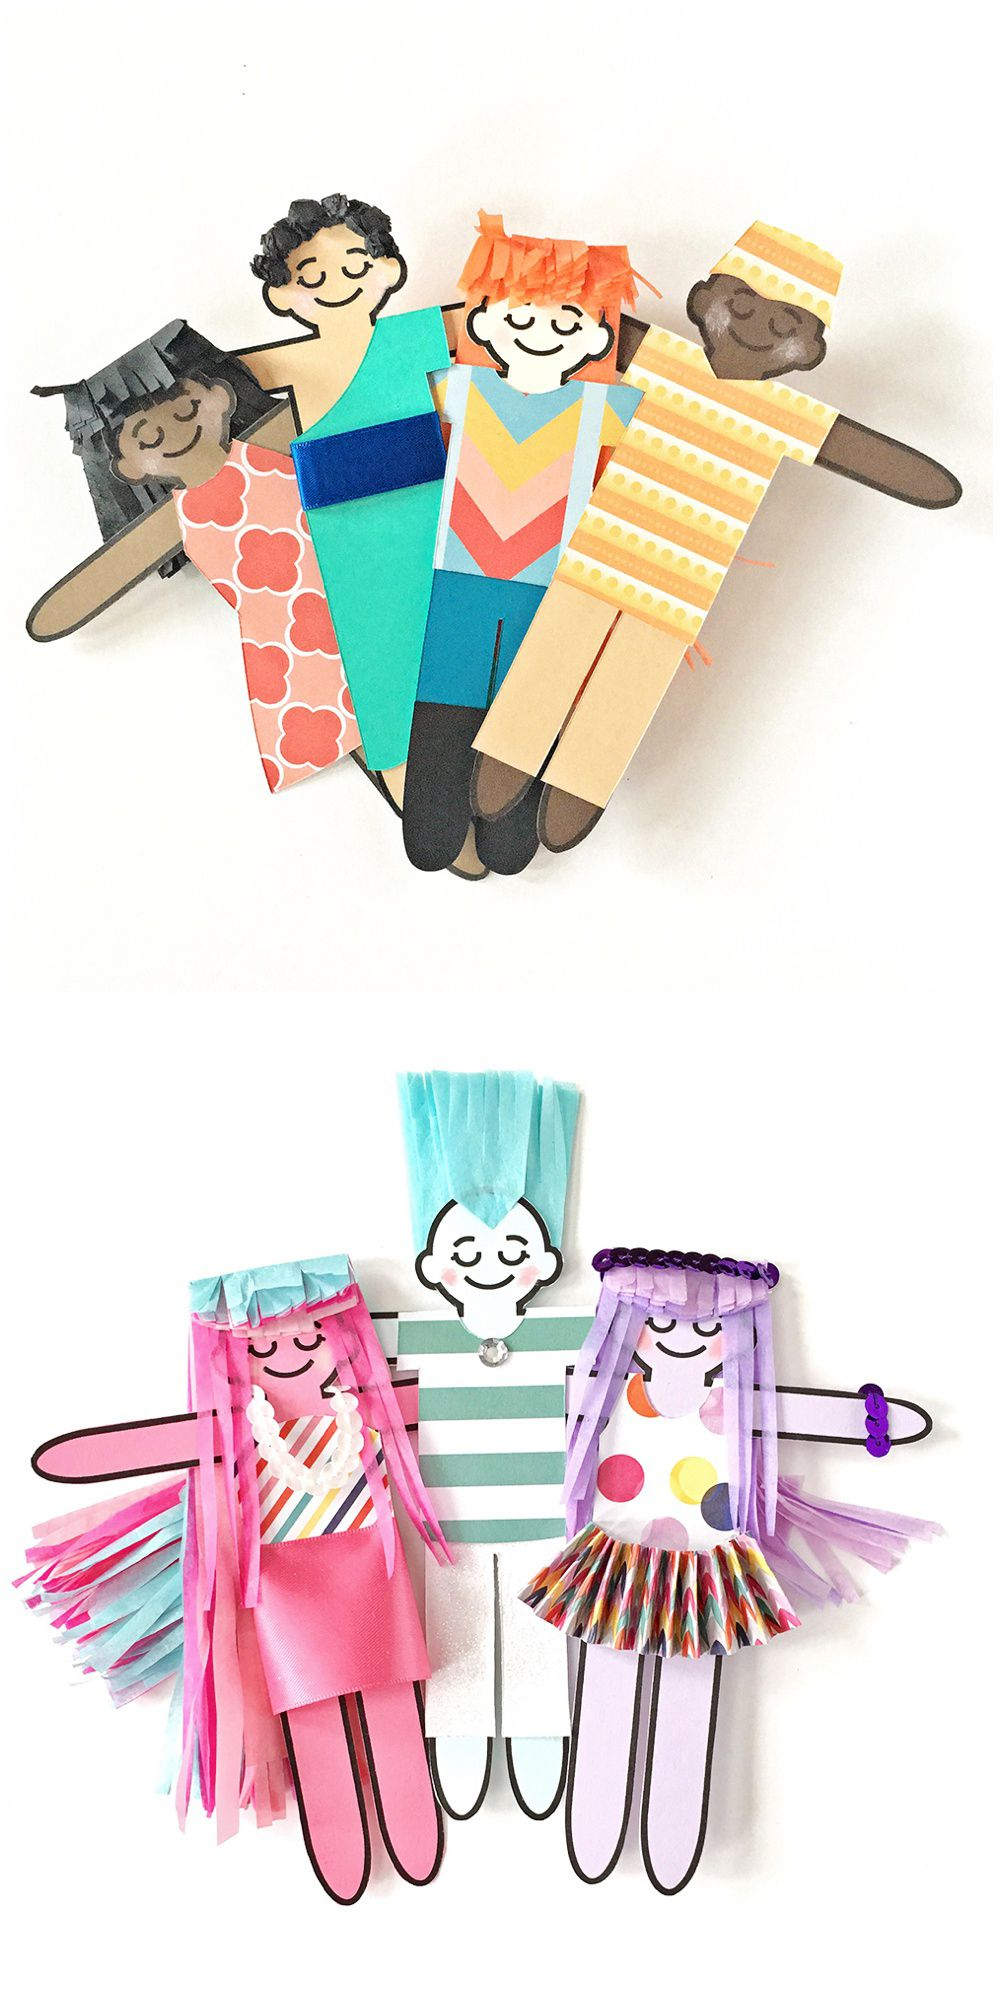 MULTICULTURAL CHILDREN'S ART WITH FREE PRINTABLE ...